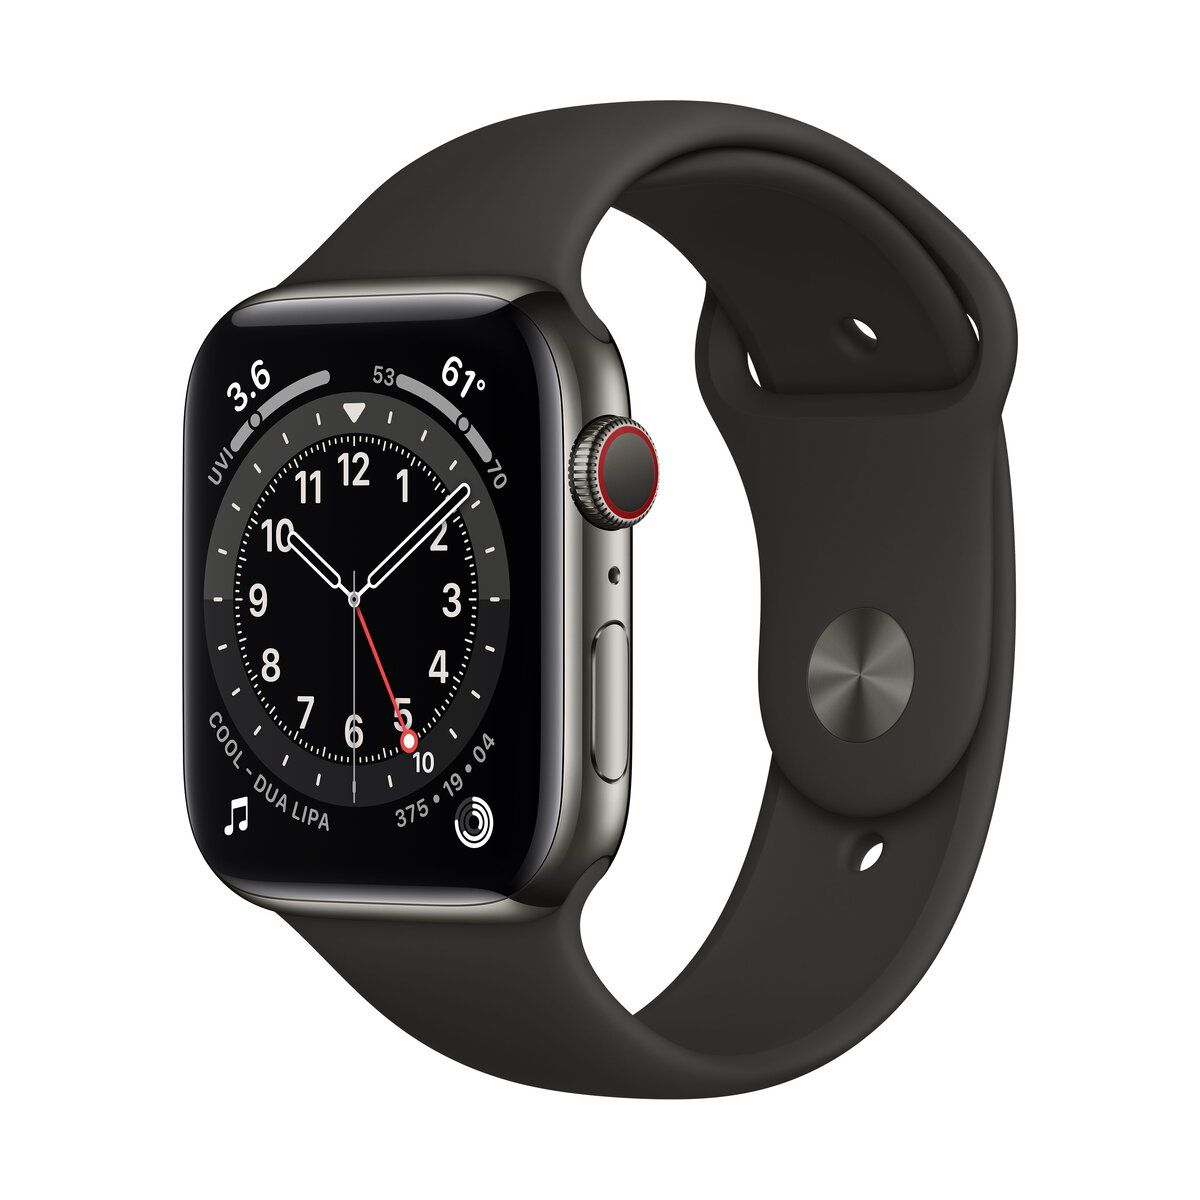 Apple Watch (Series 6) GPS+Cellular 44 mm-es grafitszínű rozsdamentesacél tok, fekete sportszíj